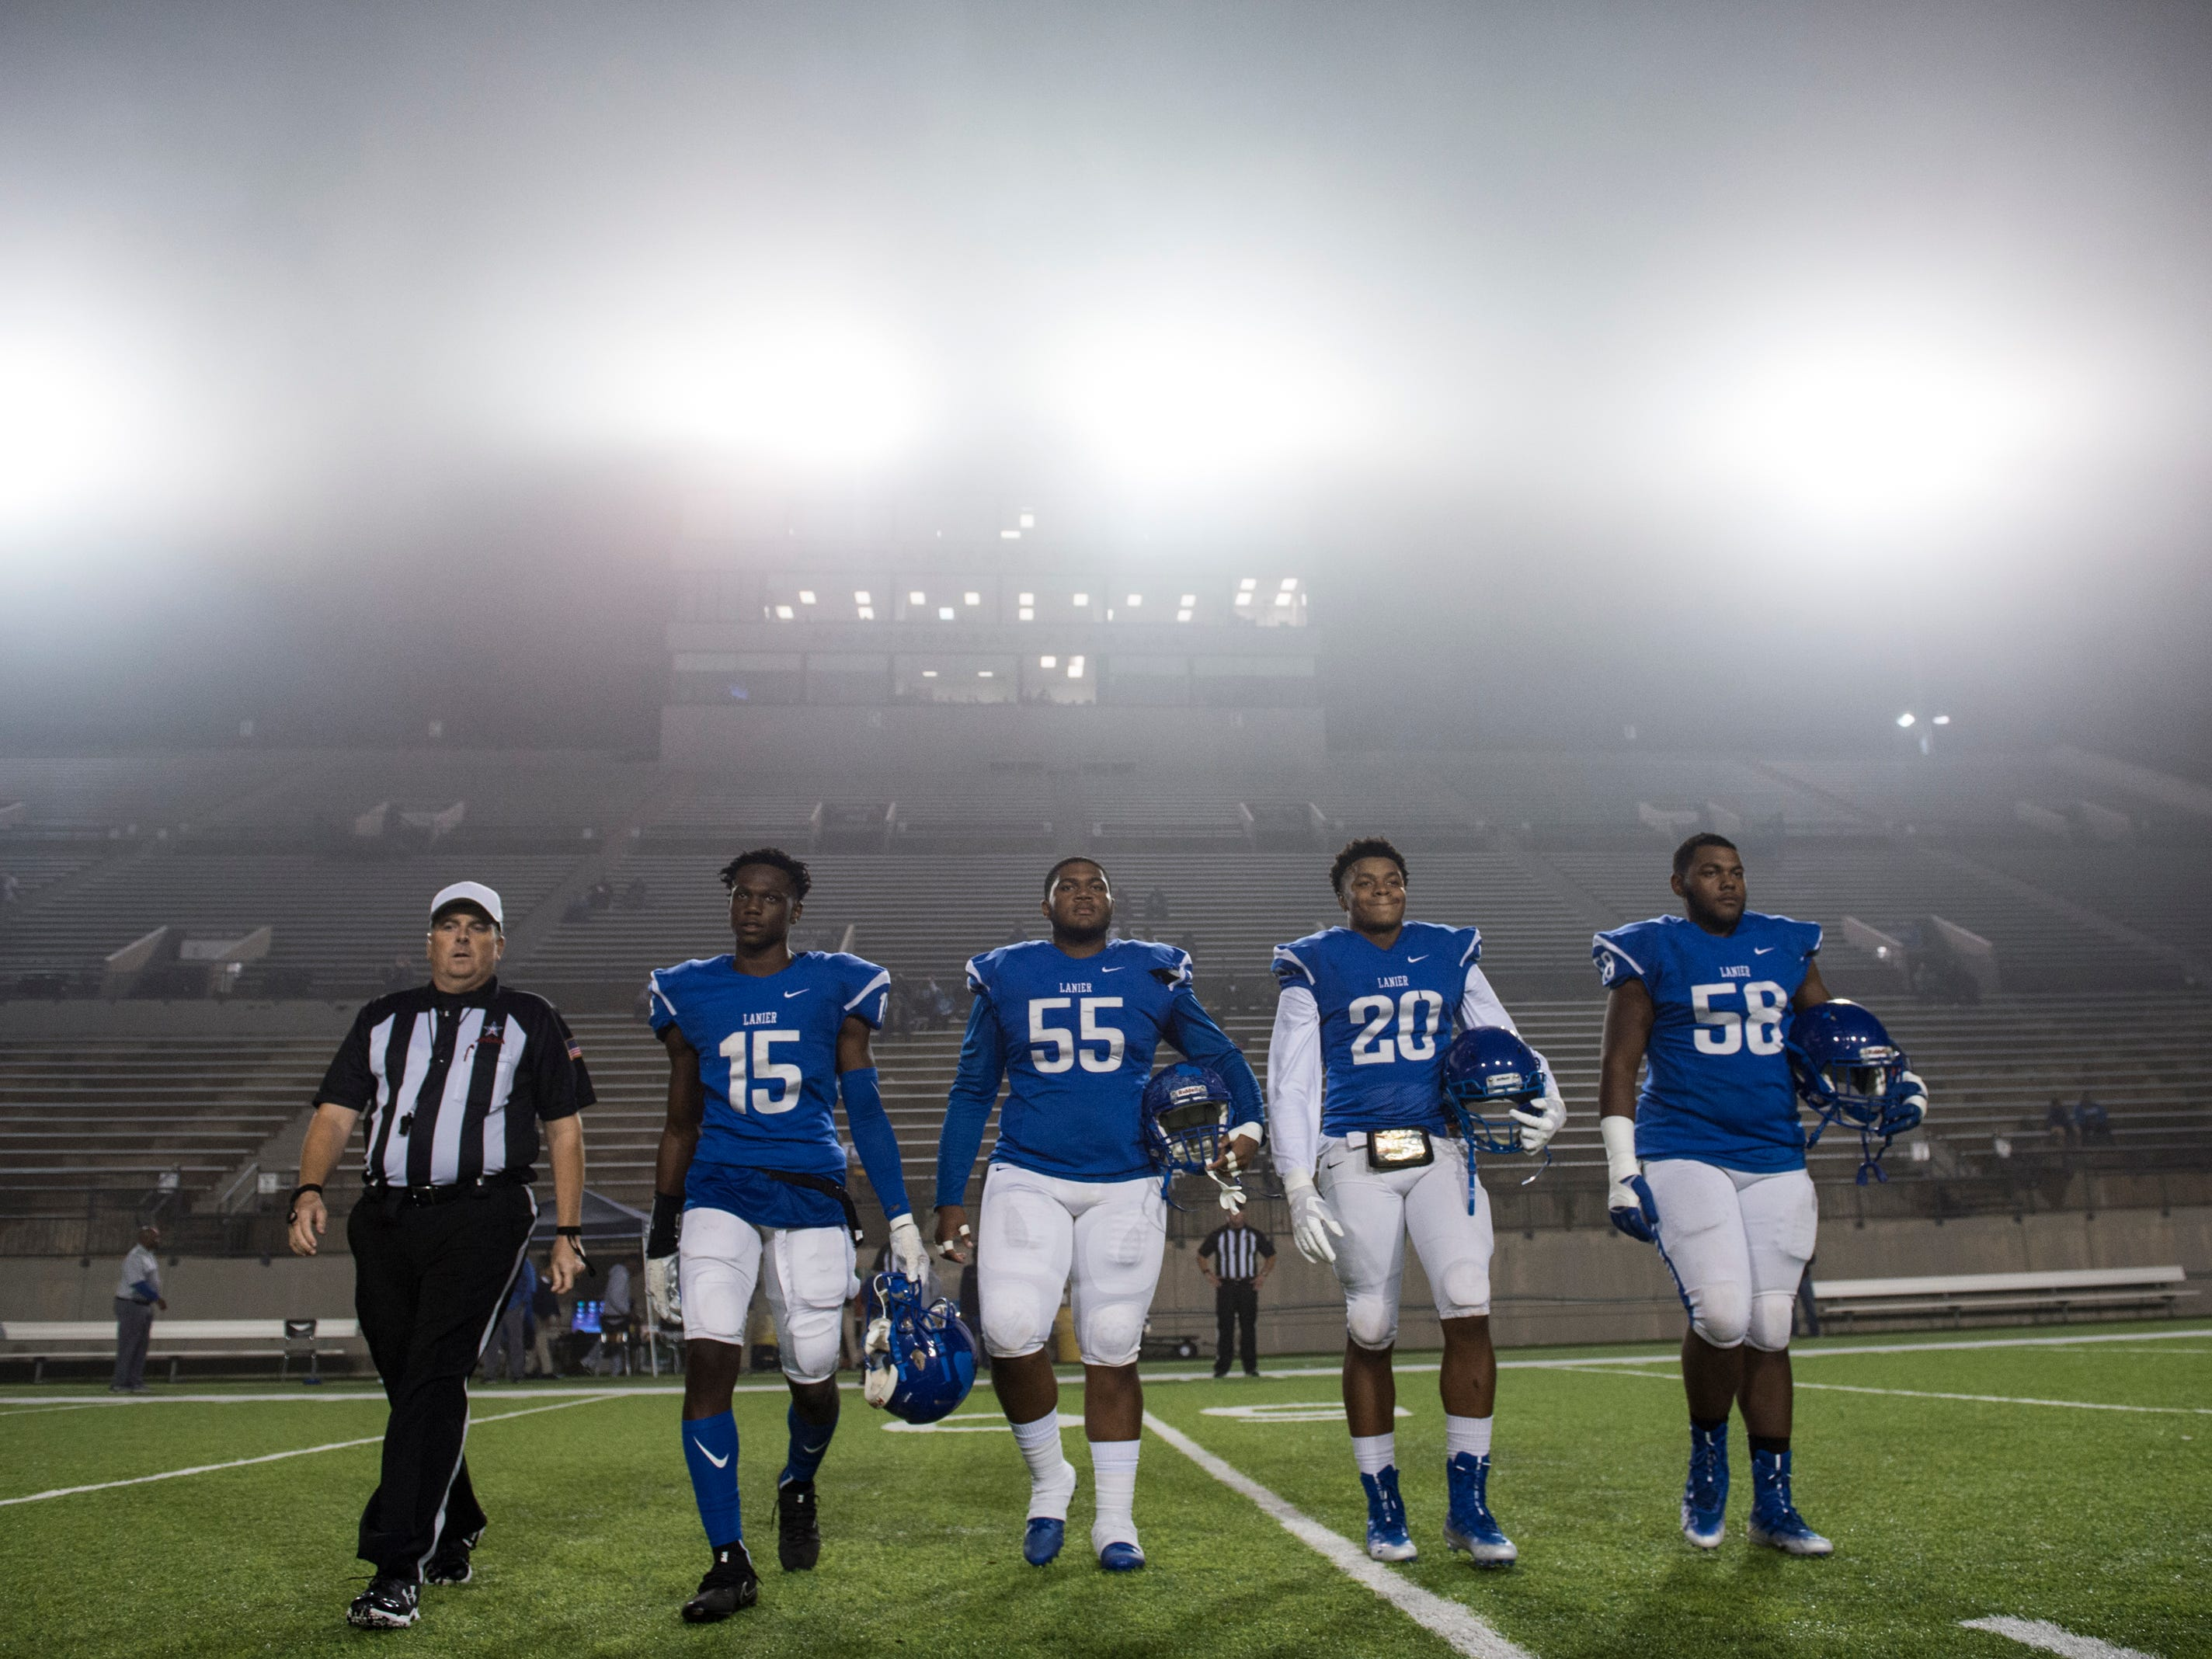 Lanier team captains walk to midfield for the coin toss during the first round of the Class 6A playoffs at Cramton Bowl in Montgomery, Ala., on Thursday, Nov. 8, 2018. Hillcrest leads Lanier 10-0 at halftime.